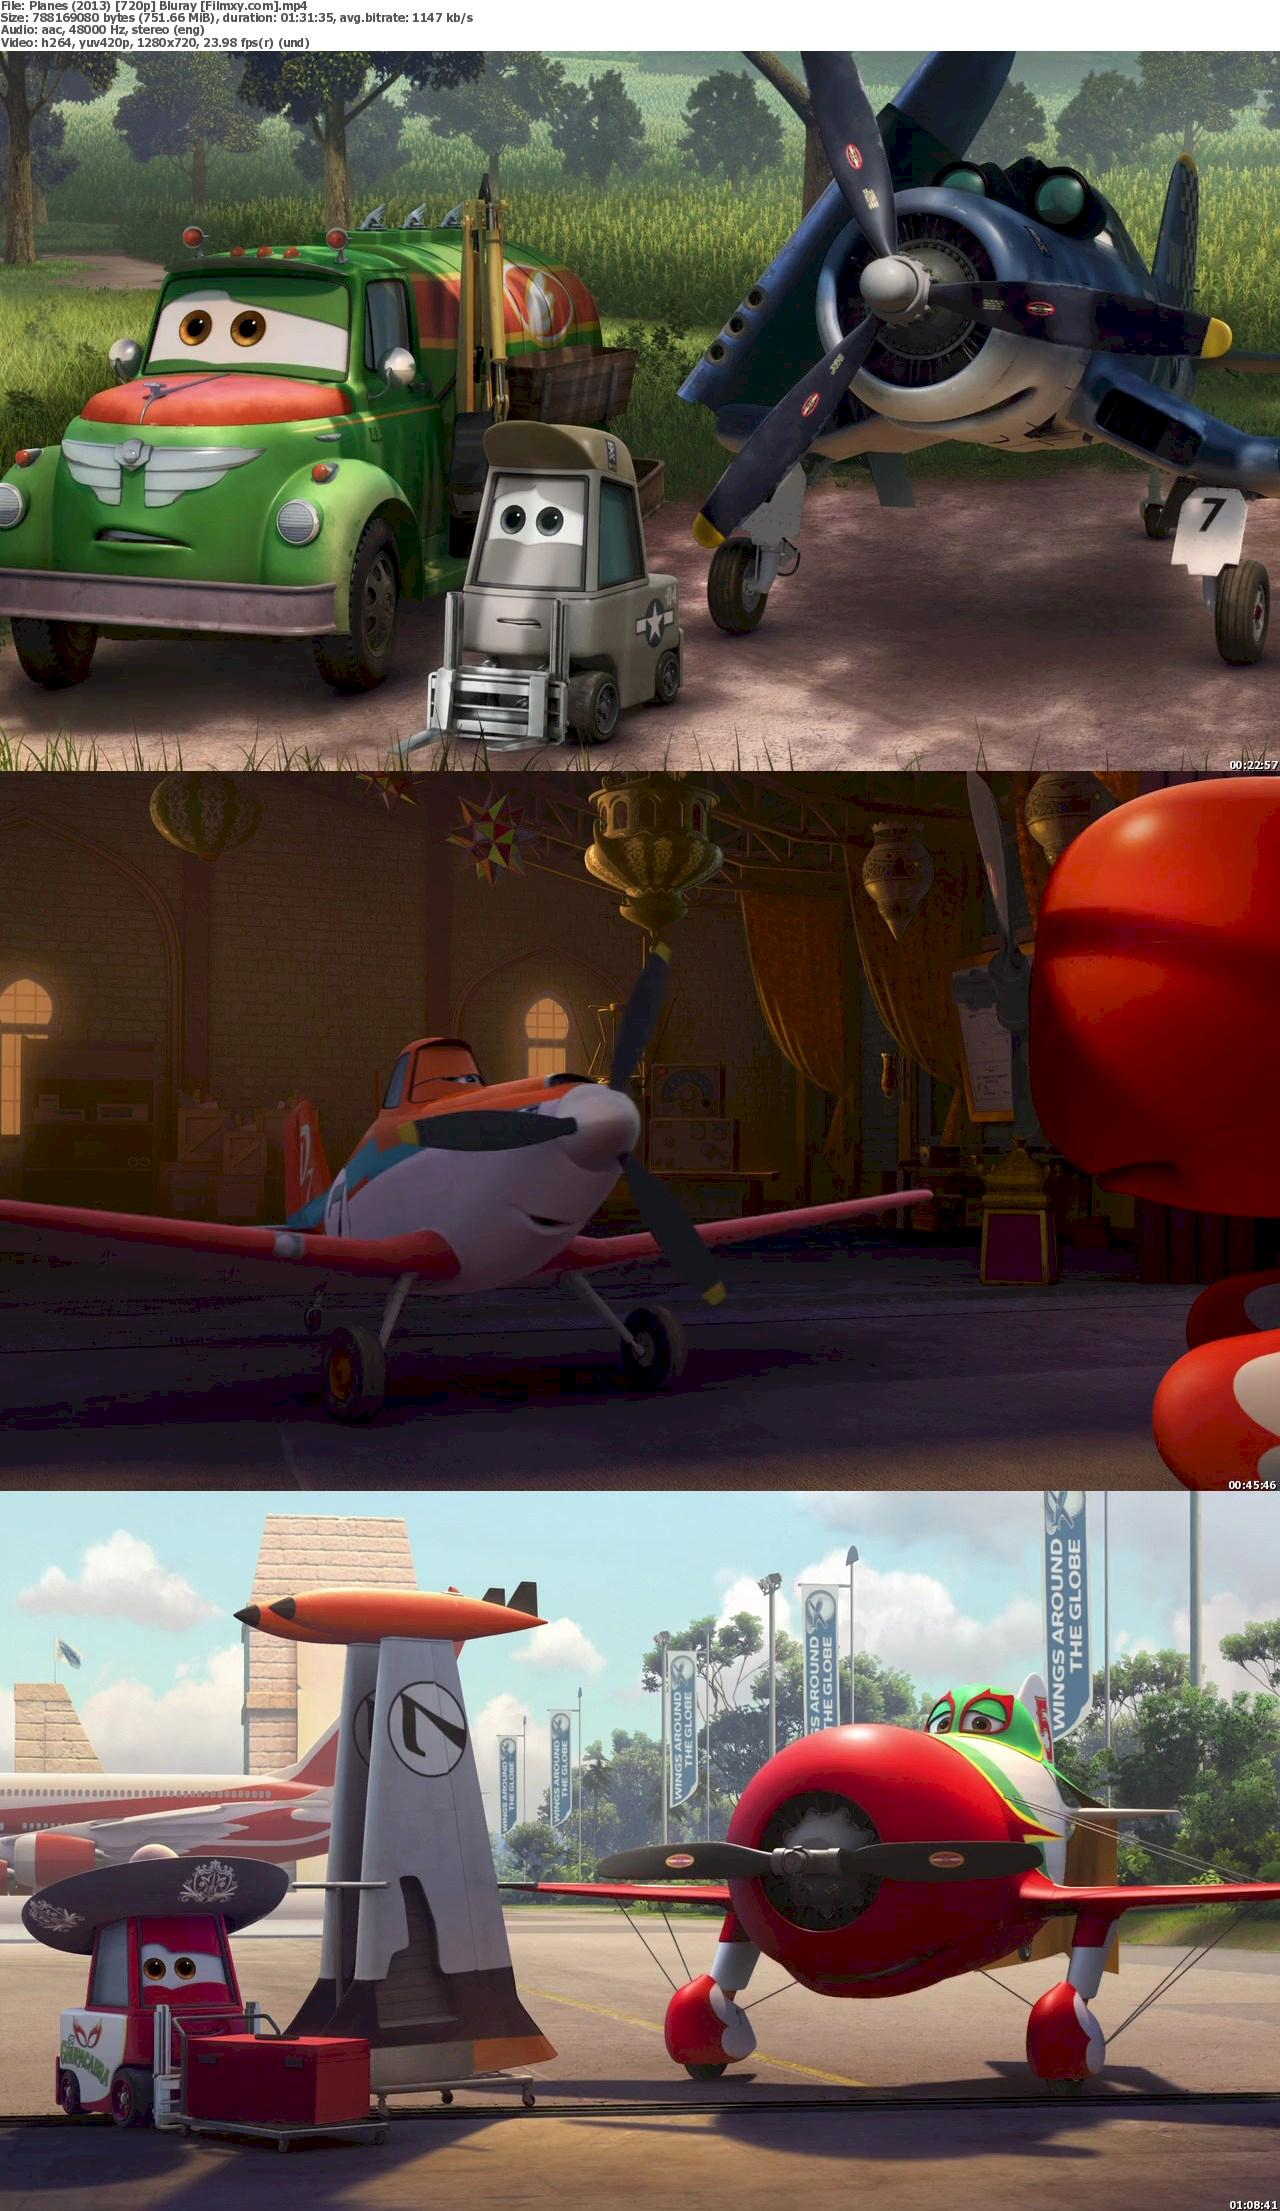 Planes (2013) 720 & 1080p Bluray Free Download 720p Screenshot